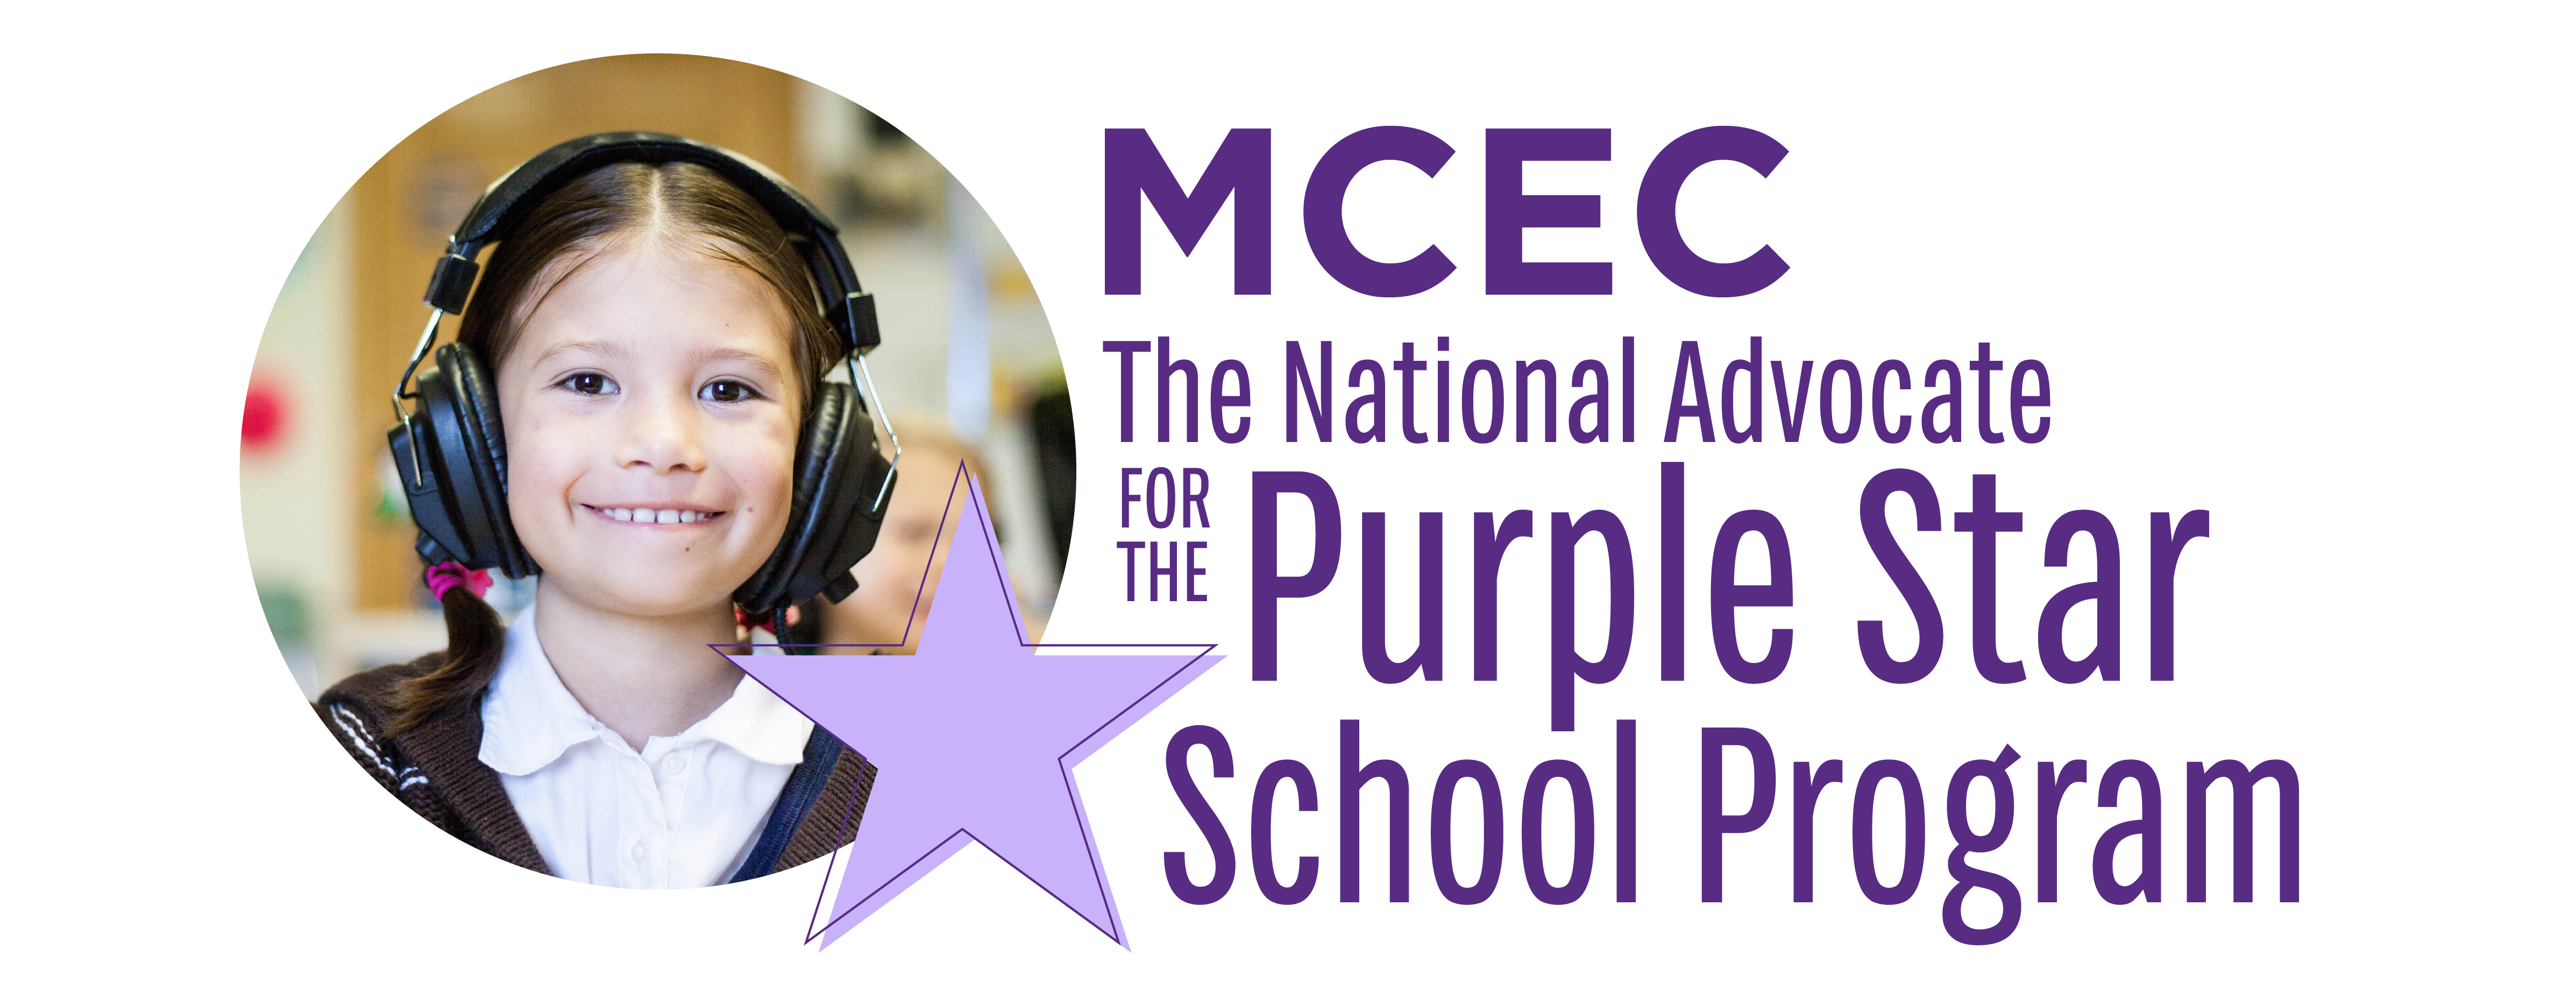 MCEC: The National Advocate for Purple Star School Program